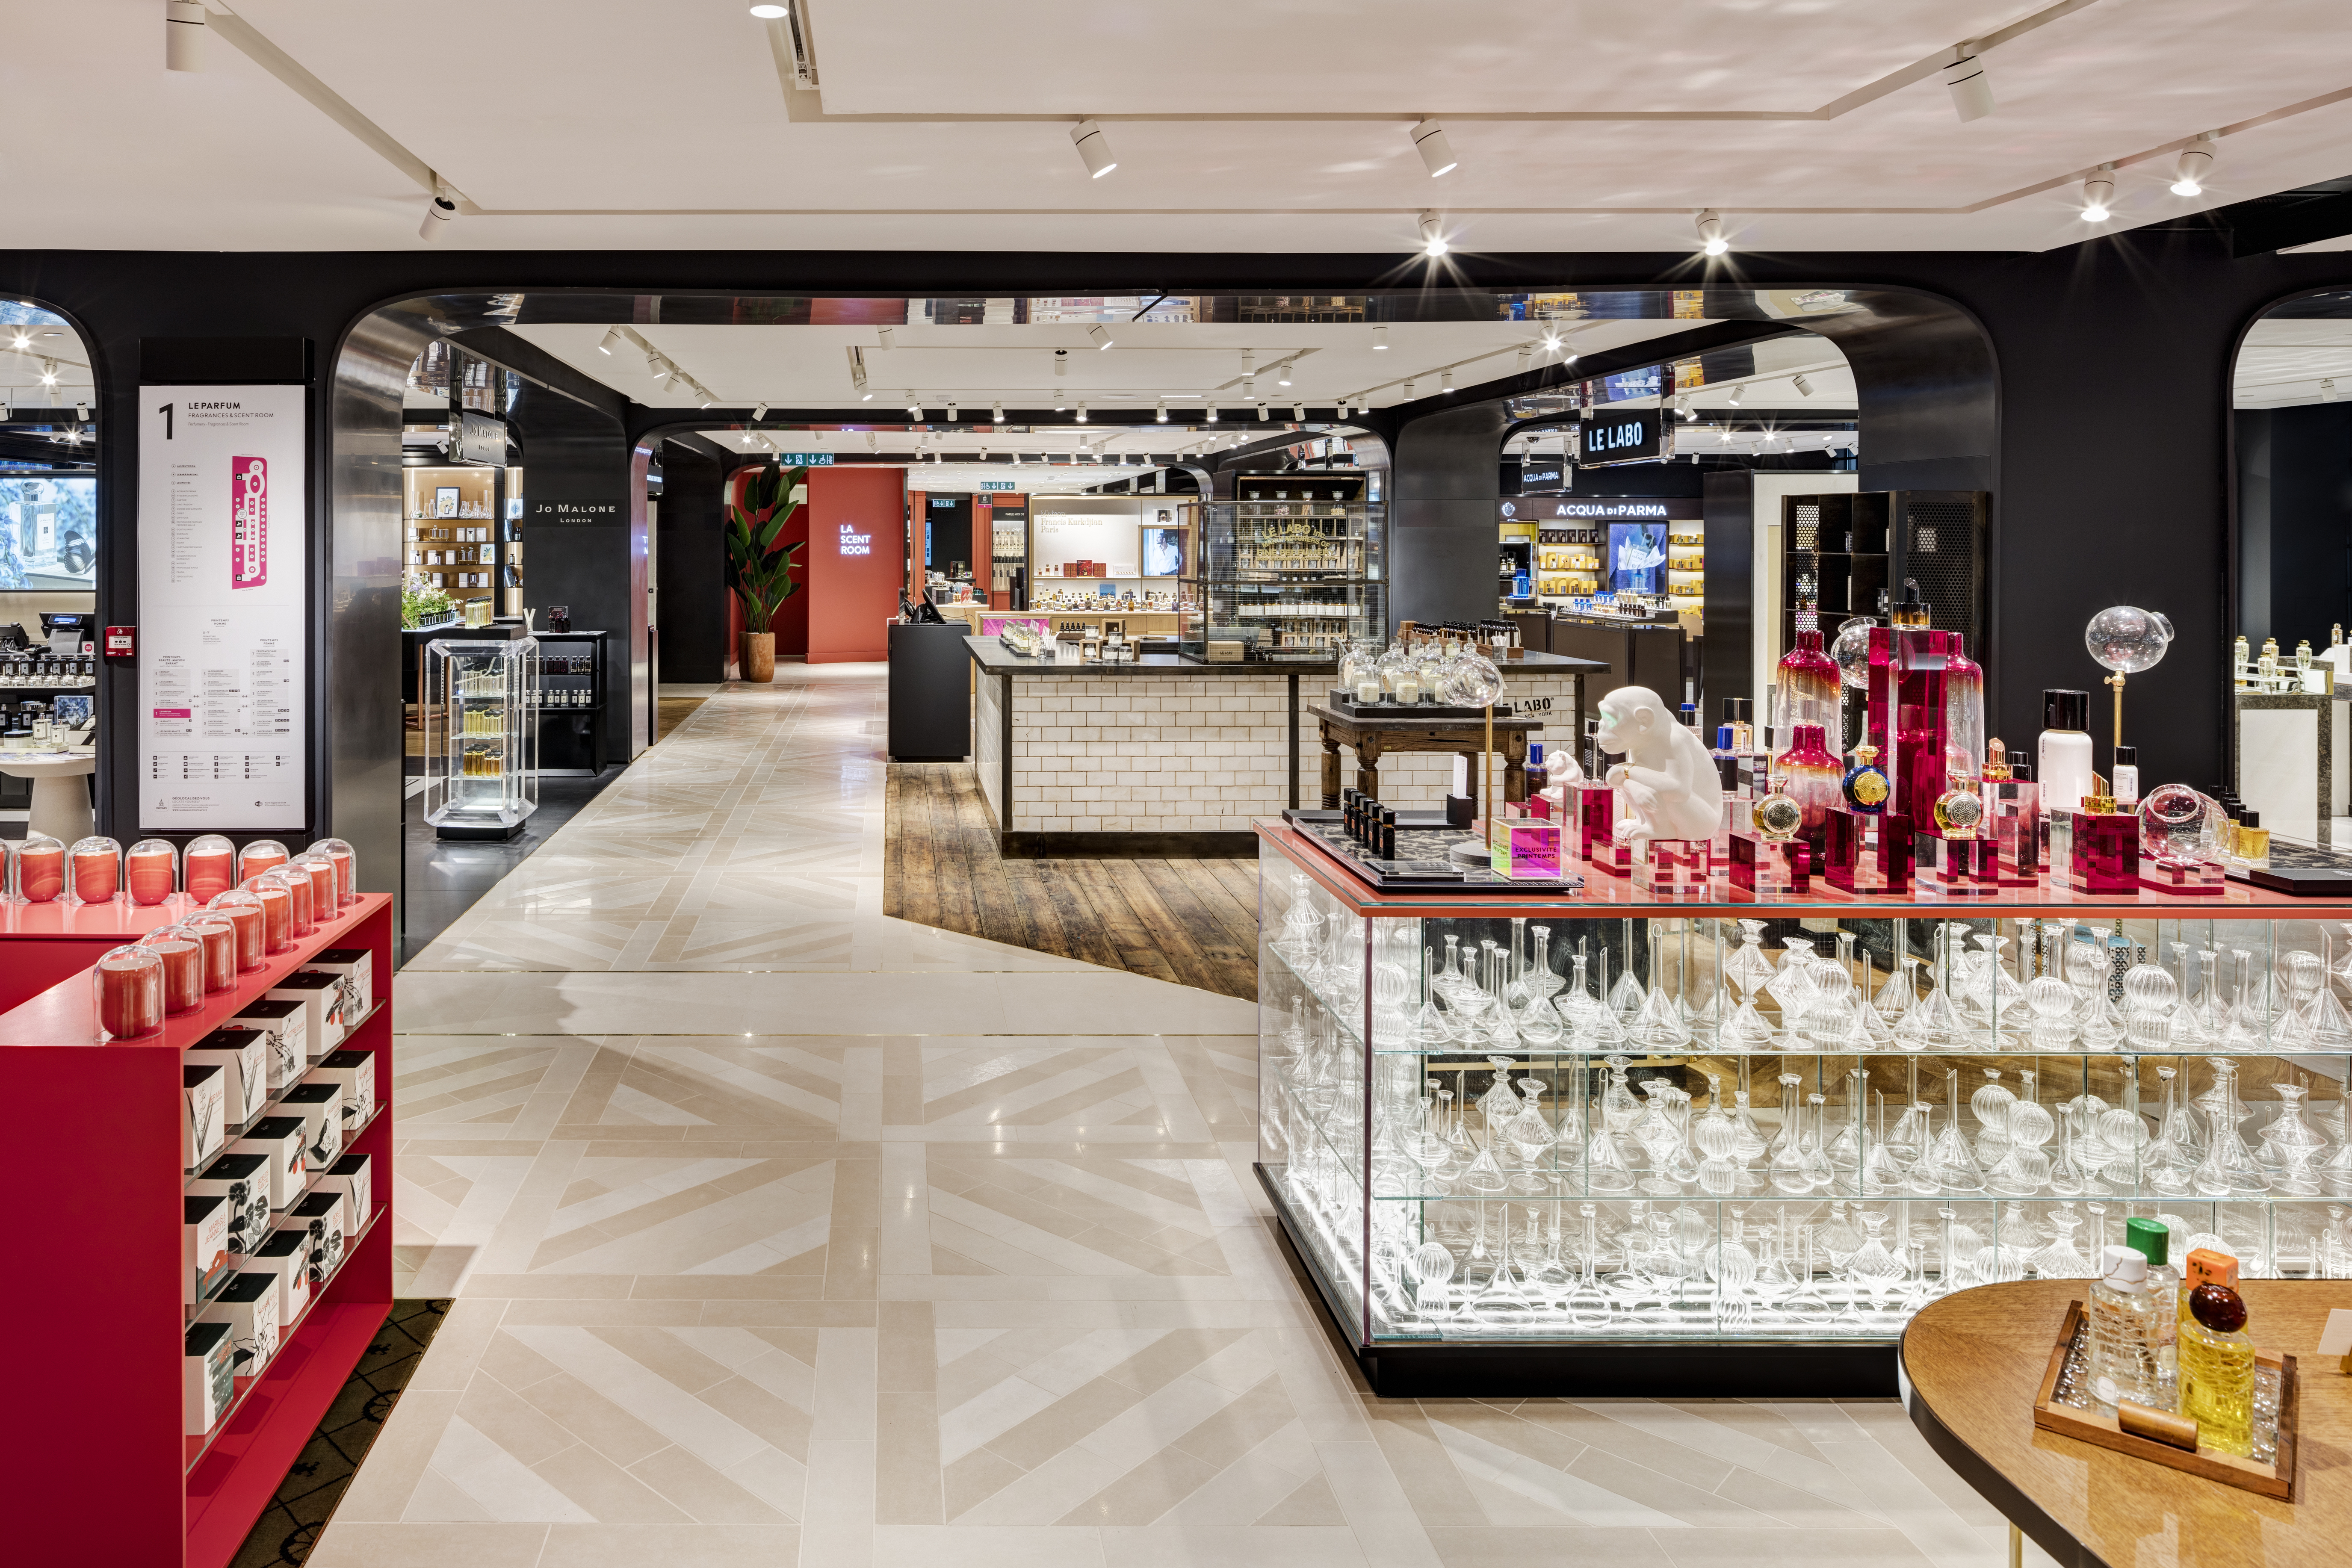 68a7065aae0 Printemps unveils its new beauty store - BW Confidential